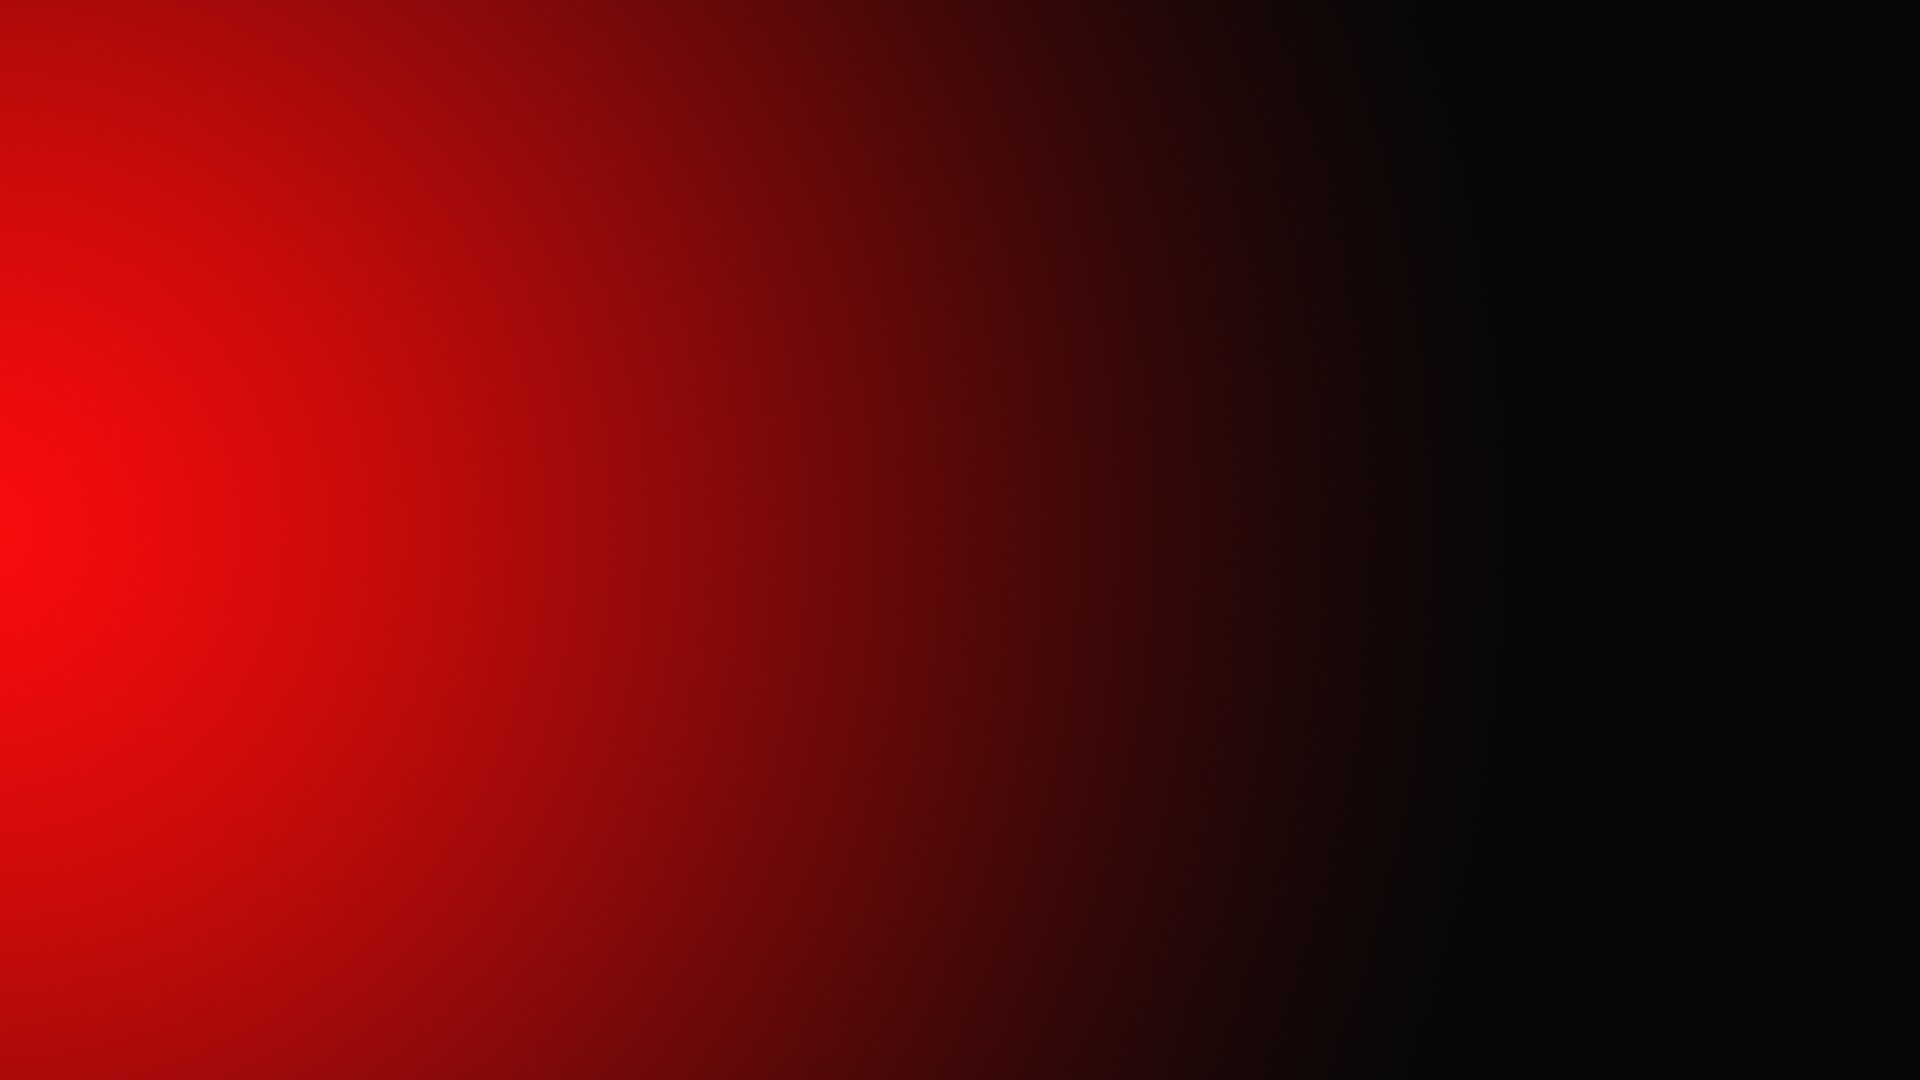 Plain red background download free amazing high for Rote tapeten wandgestaltung